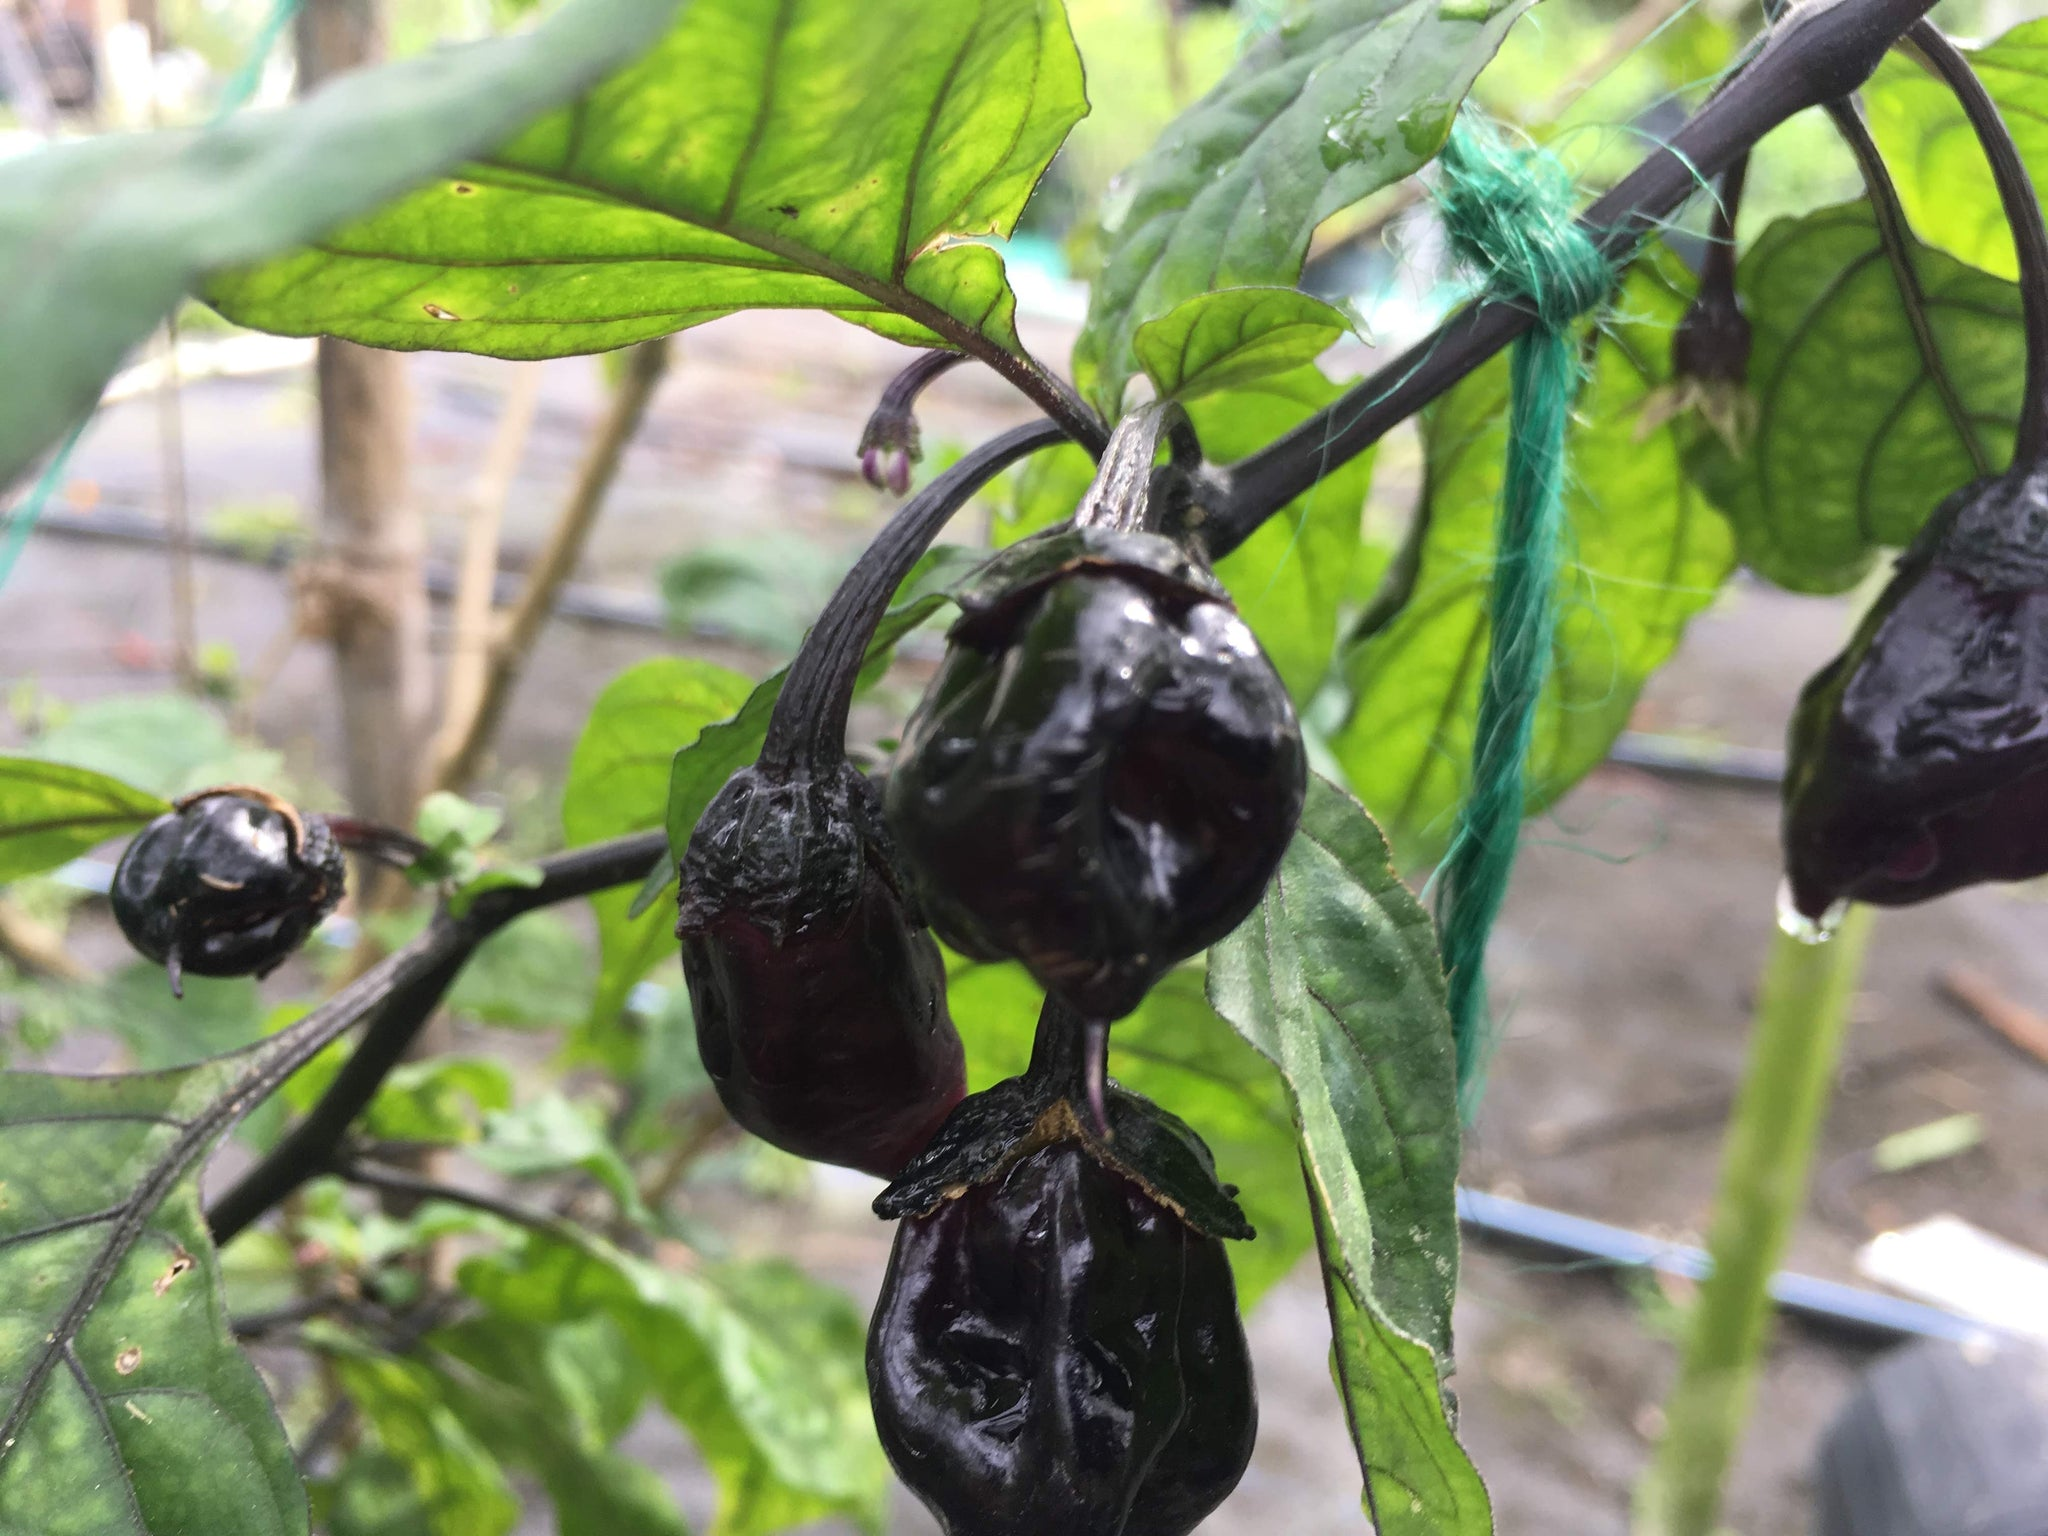 M A M P  BerryGum (Pepper Seeds) – Towns-End Chili & Spice